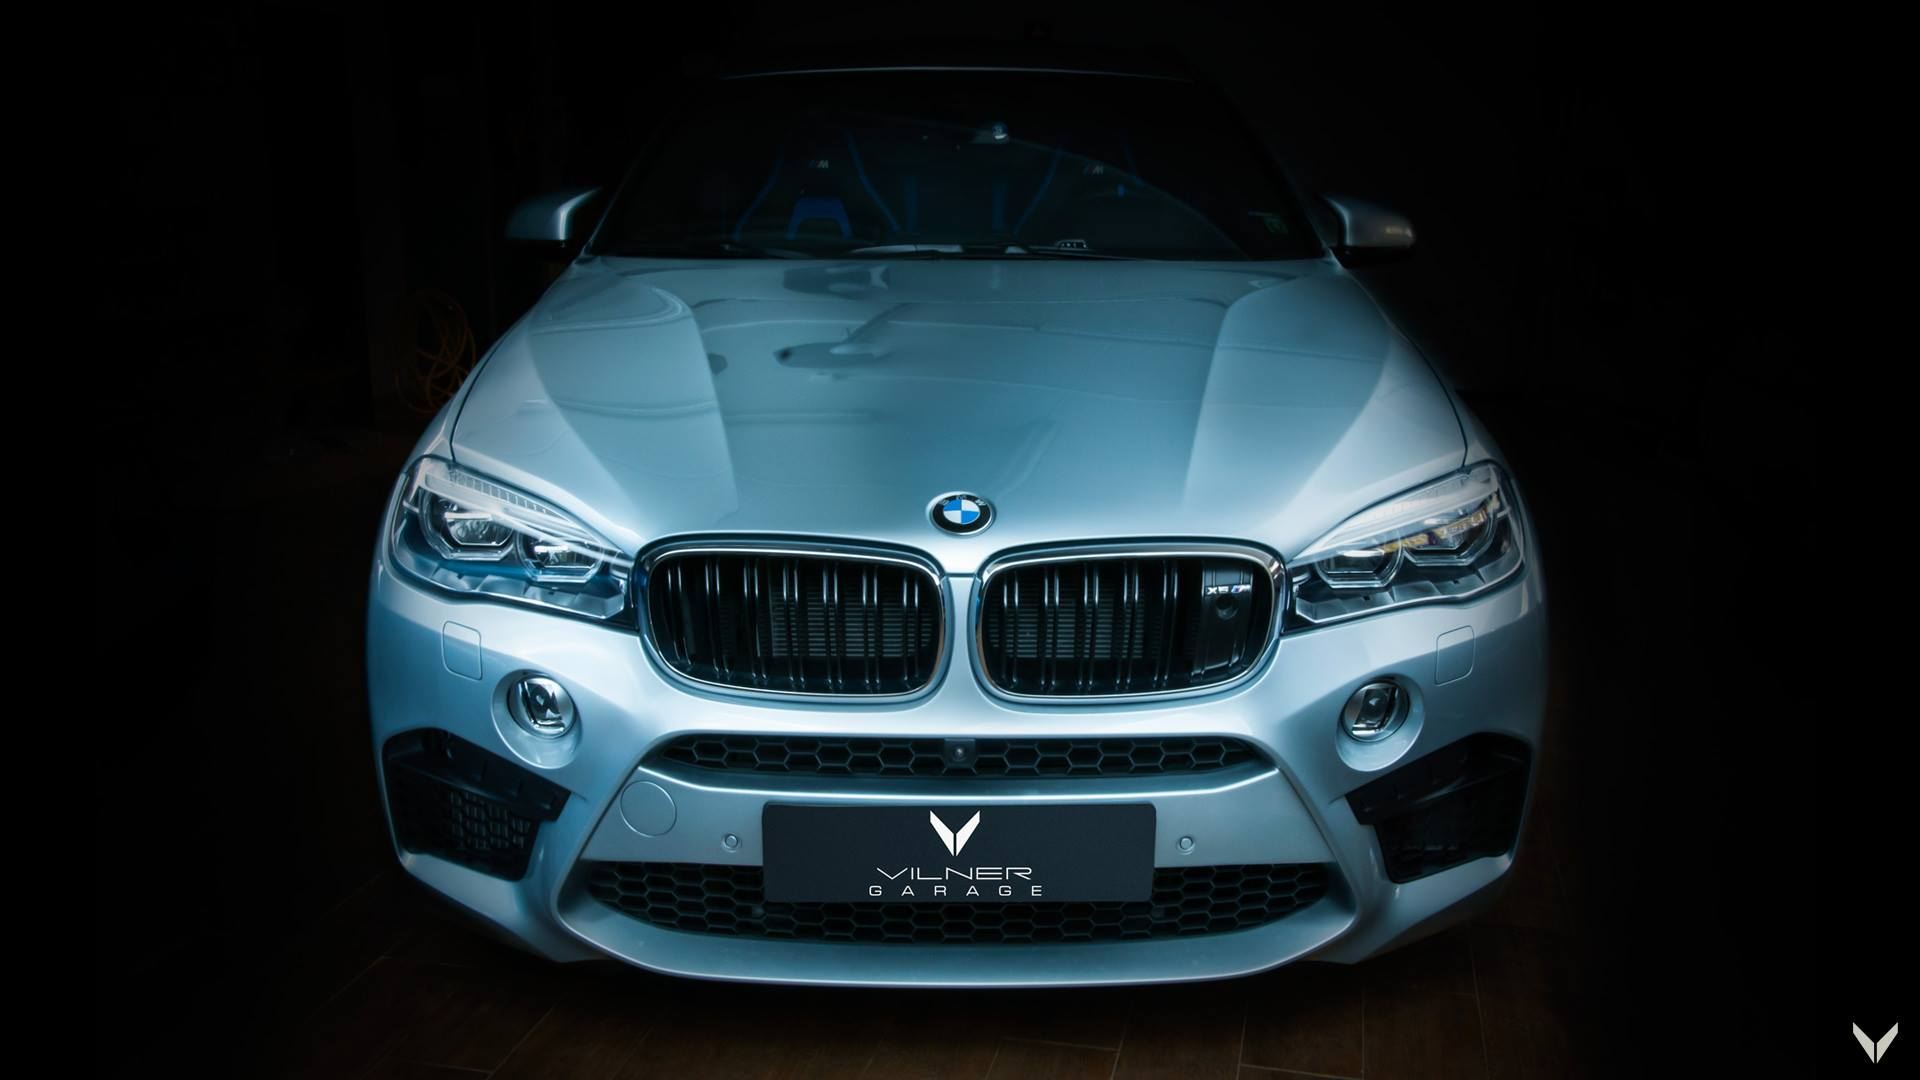 Vilner Bmw X6 M F86 With Luxury Interior In Blue Black